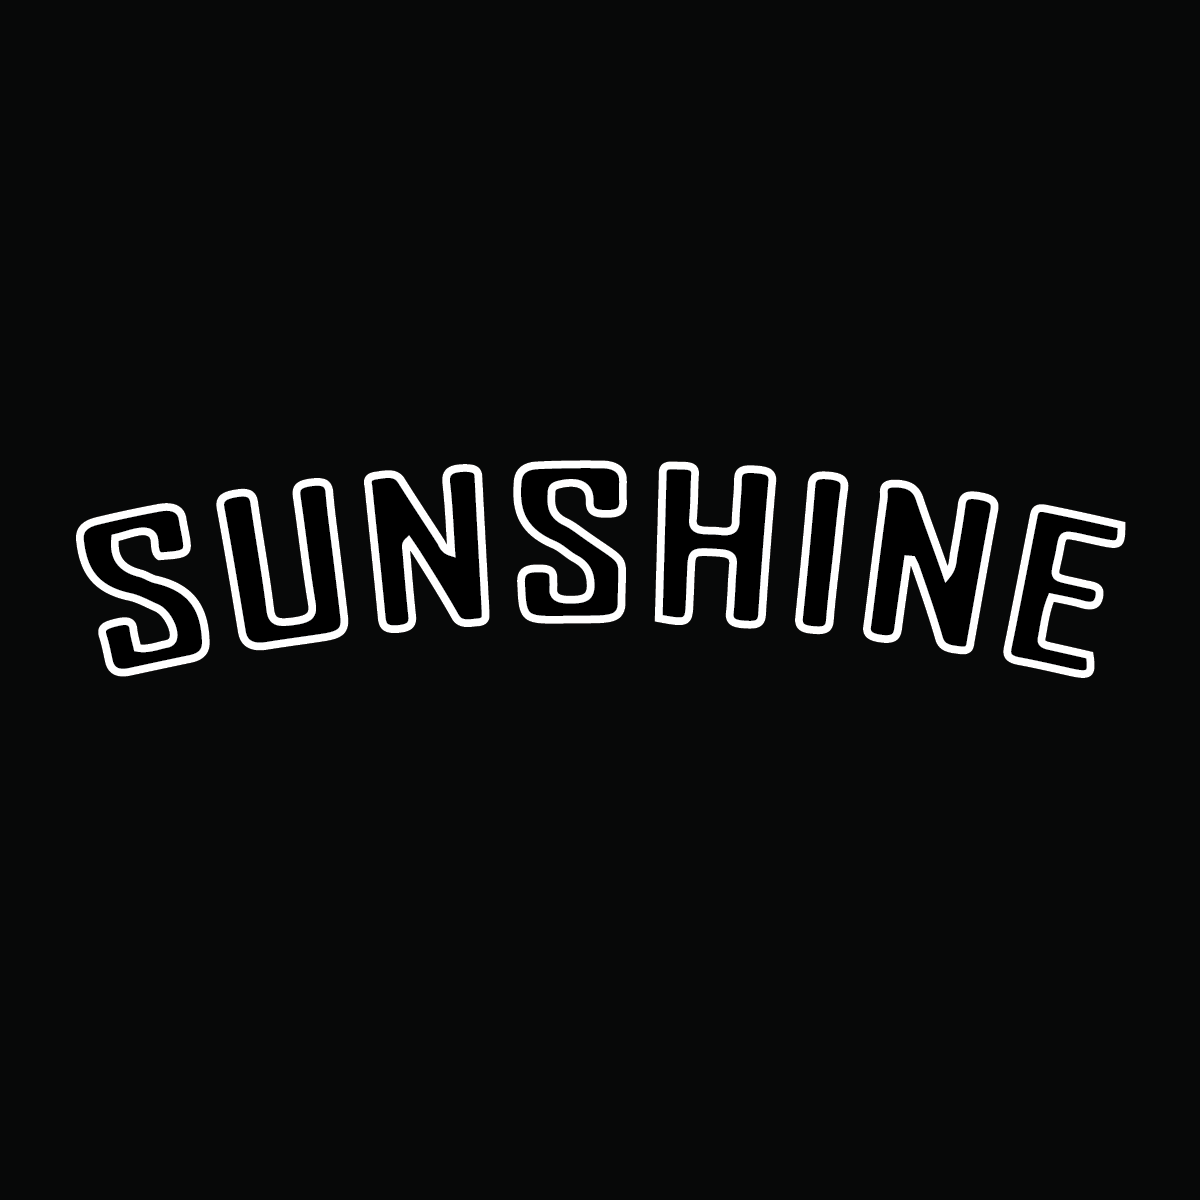 Sunshine Men's 2019 Longsleeve - Black